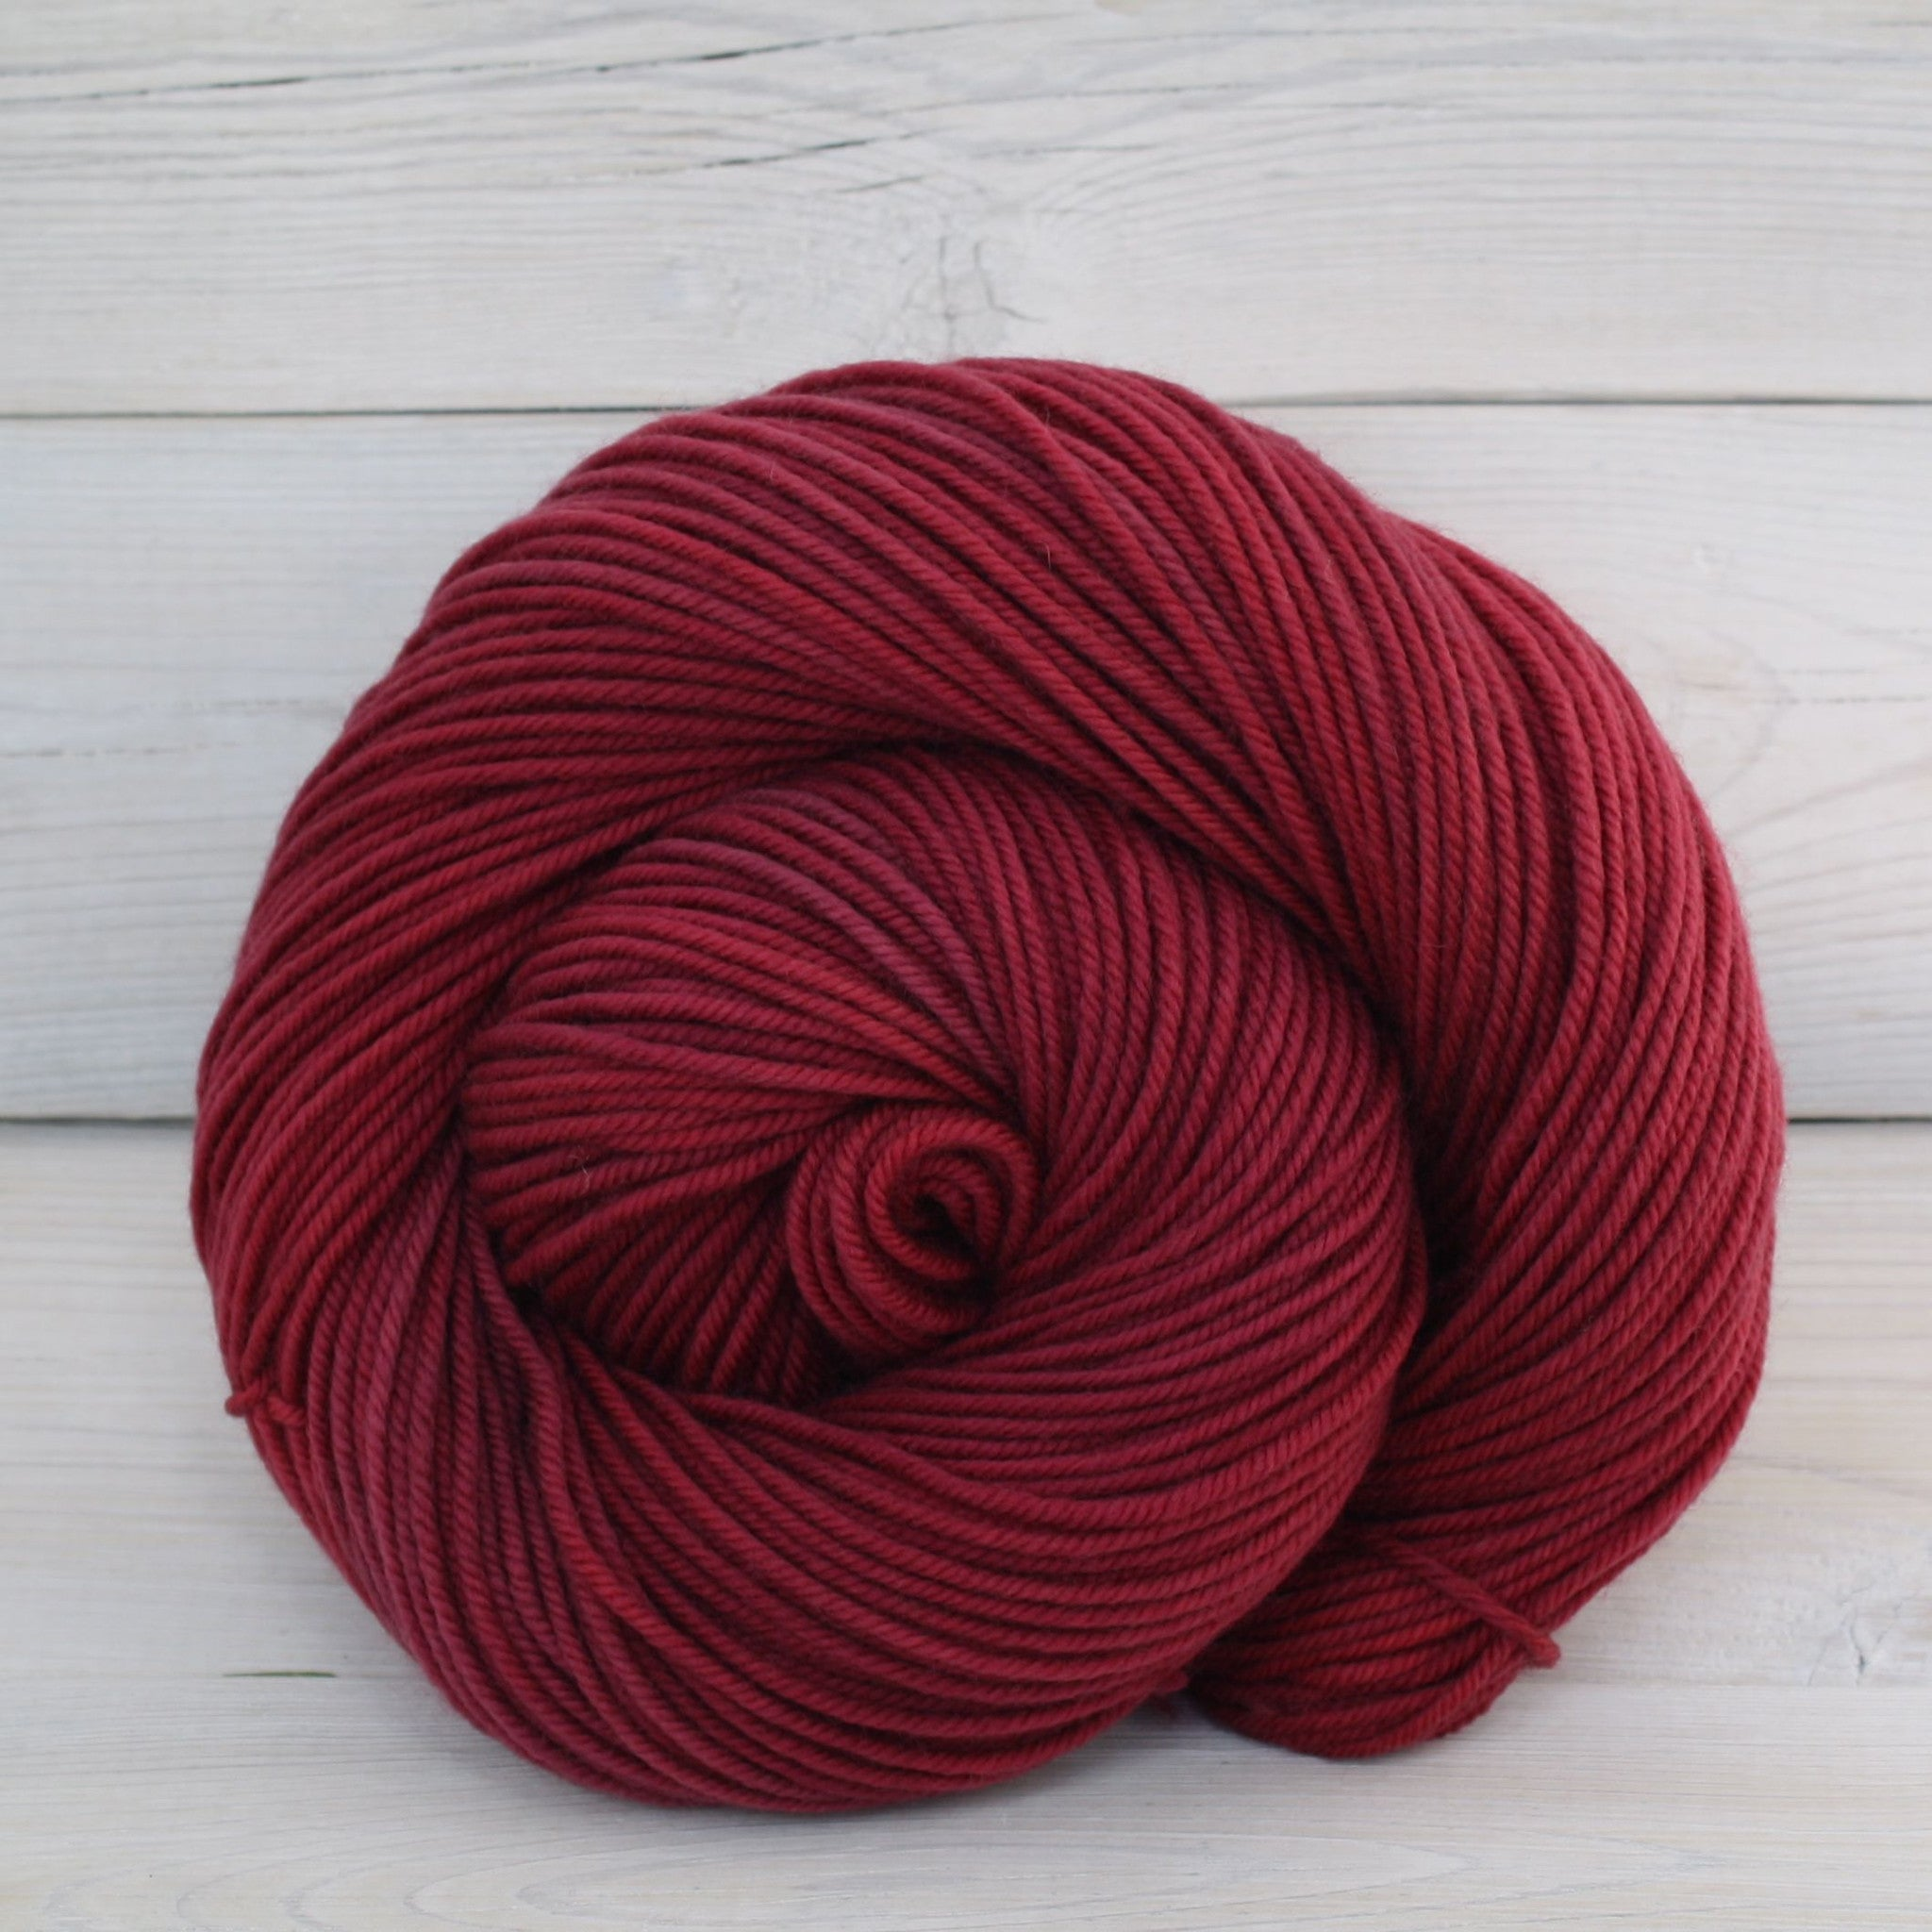 Luna Grey Fiber Arts Calypso Yarn | Colorway: Cranberry